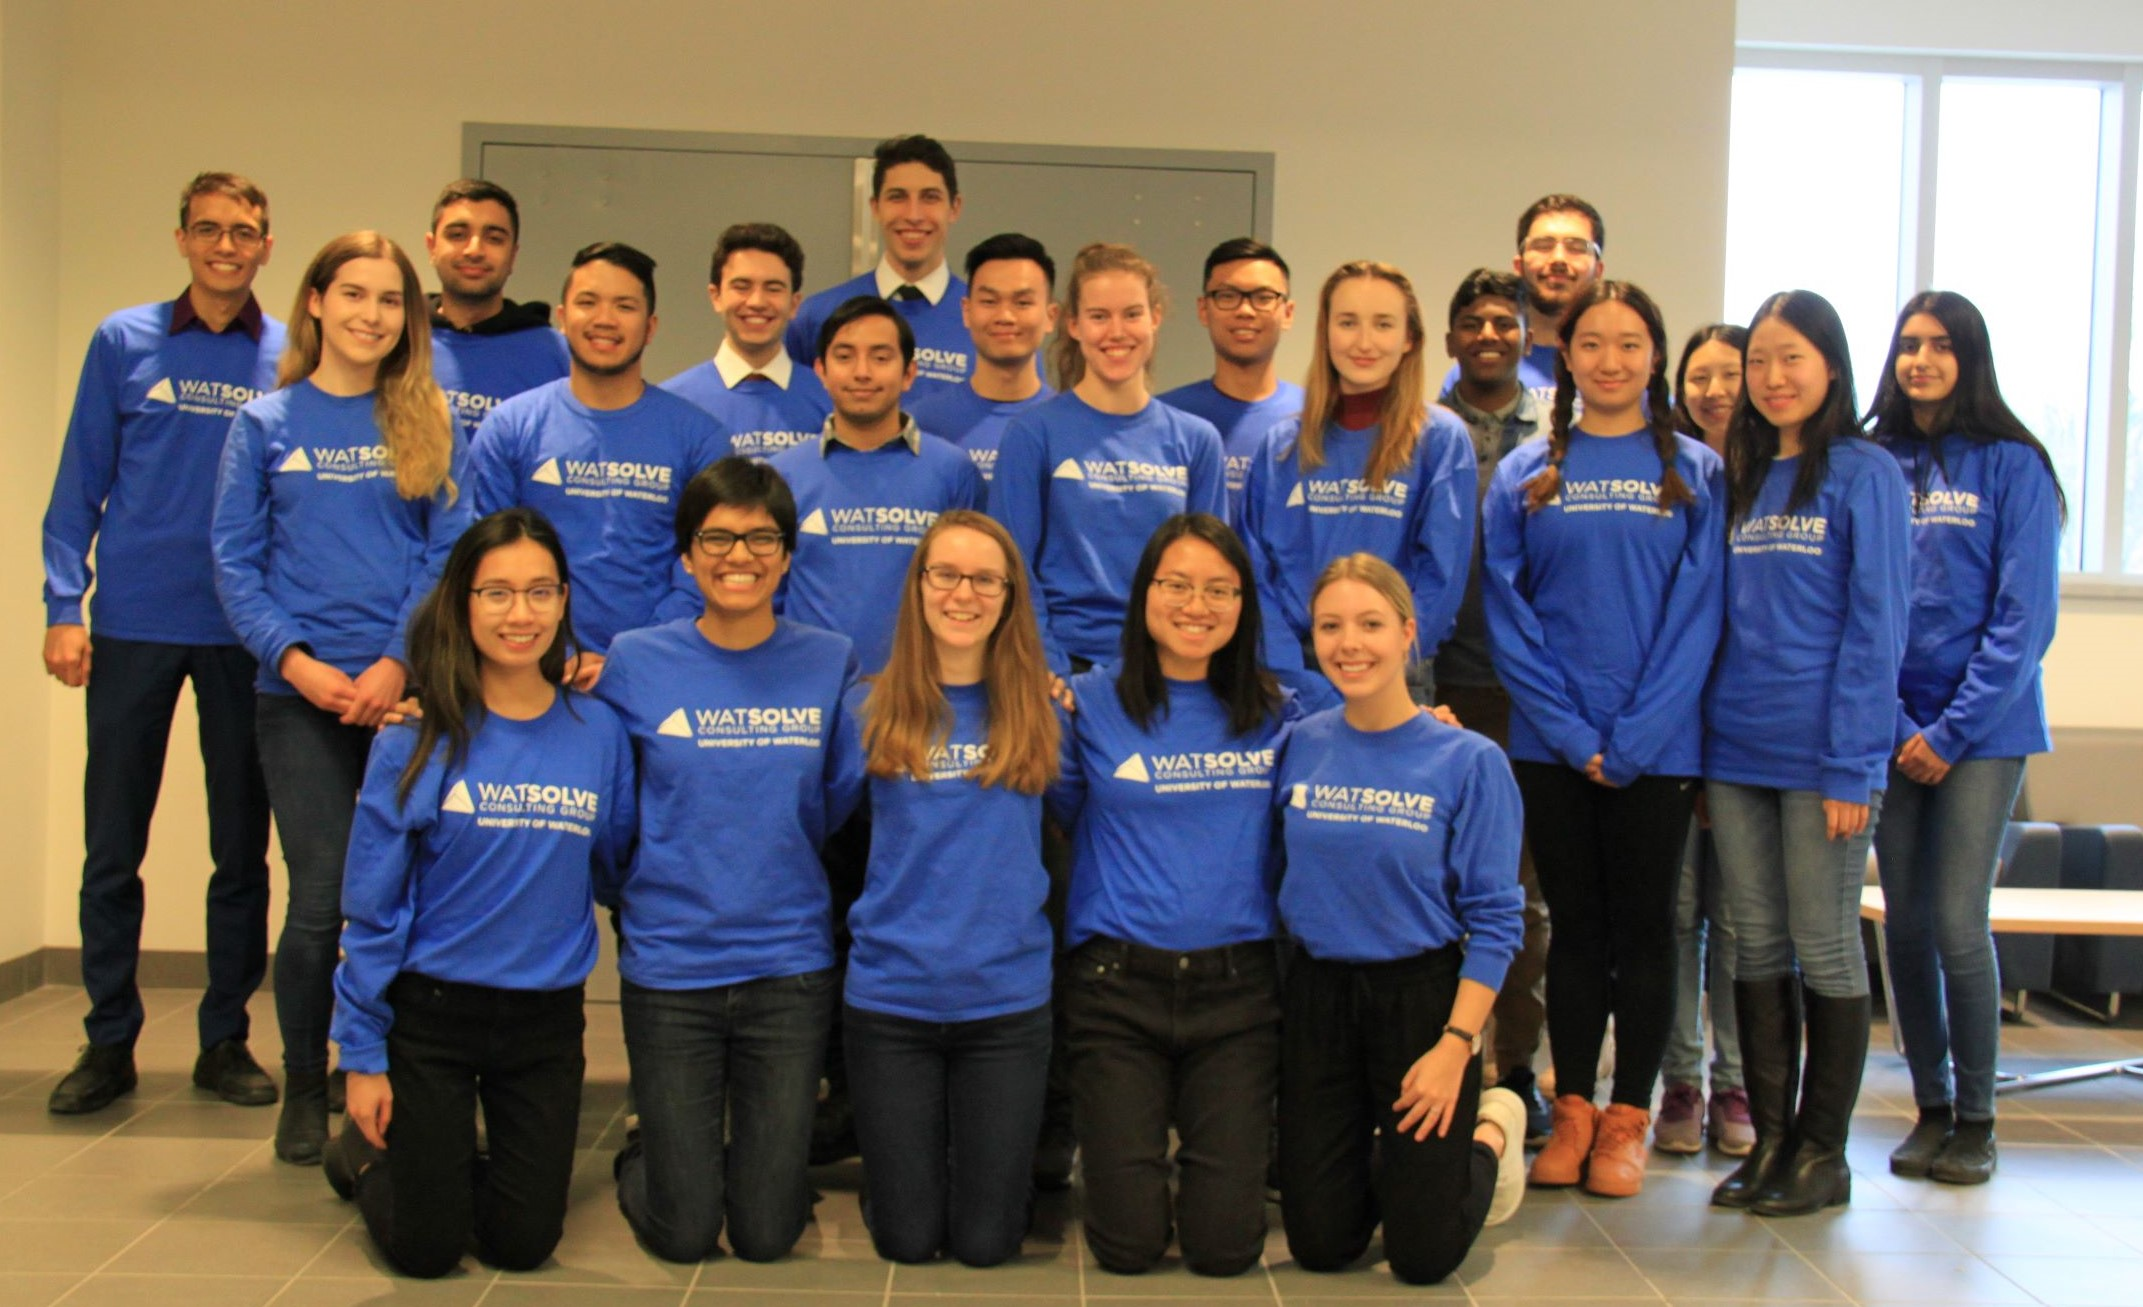 group photo of the WatSolve team